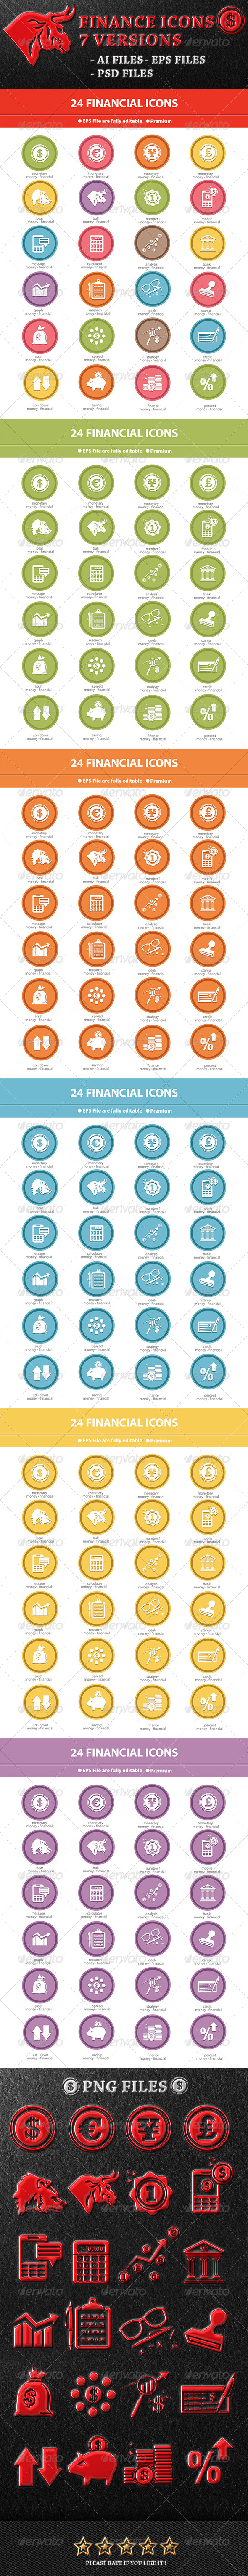 GraphicRiver Finance Icons 7 Version 7616614